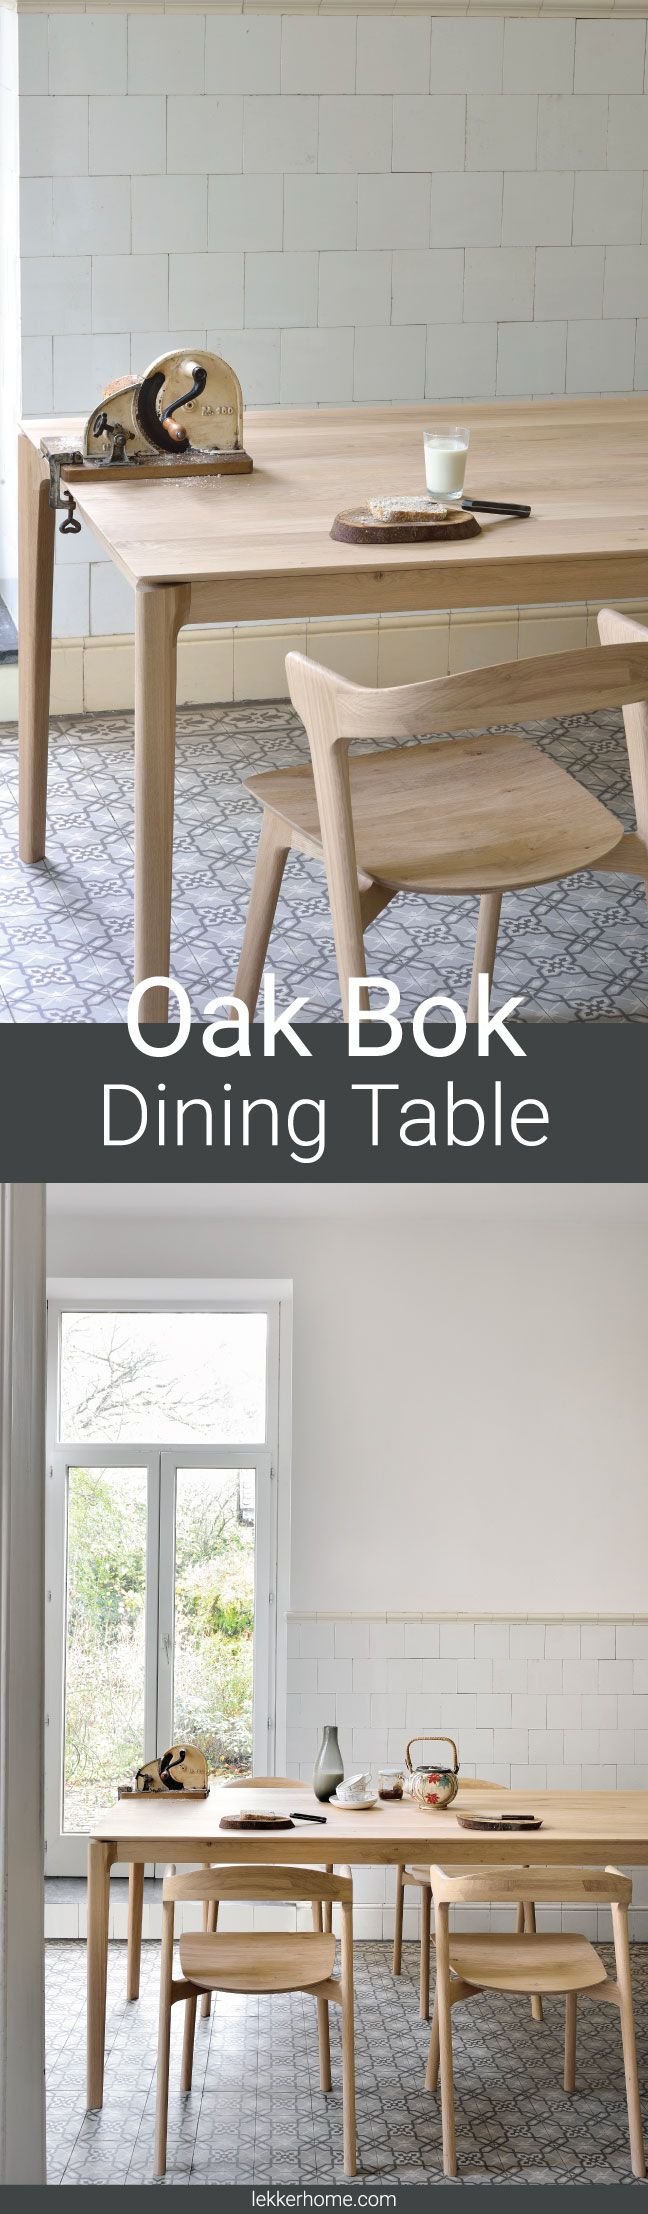 84 best Dining Room images on Pinterest | Dining room, Chairs and ...